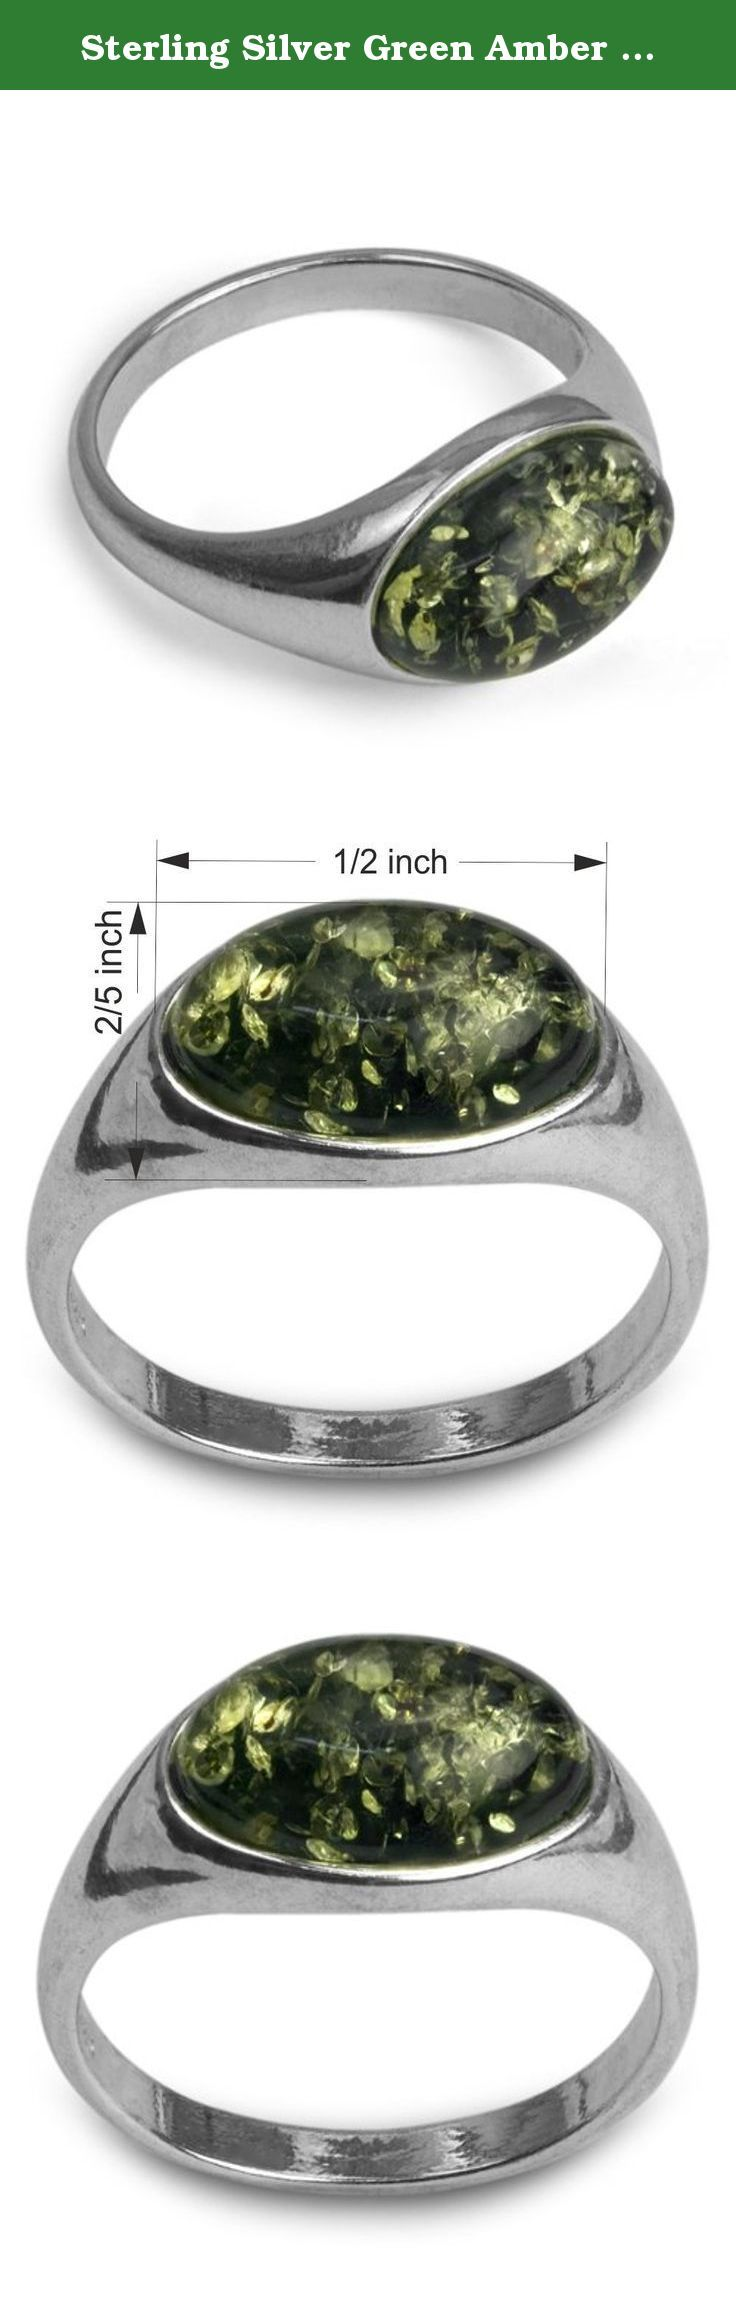 Sterling Silver Green Amber Oval Ring. Most of our amber found in Baltic sea area. Baltic sea considered to have biggest deposits of amber and quality of gemstone in this region is better than in any other location. Besides Baltic region there are large deposits of amber in Dominican republic, Columbia and Africa.